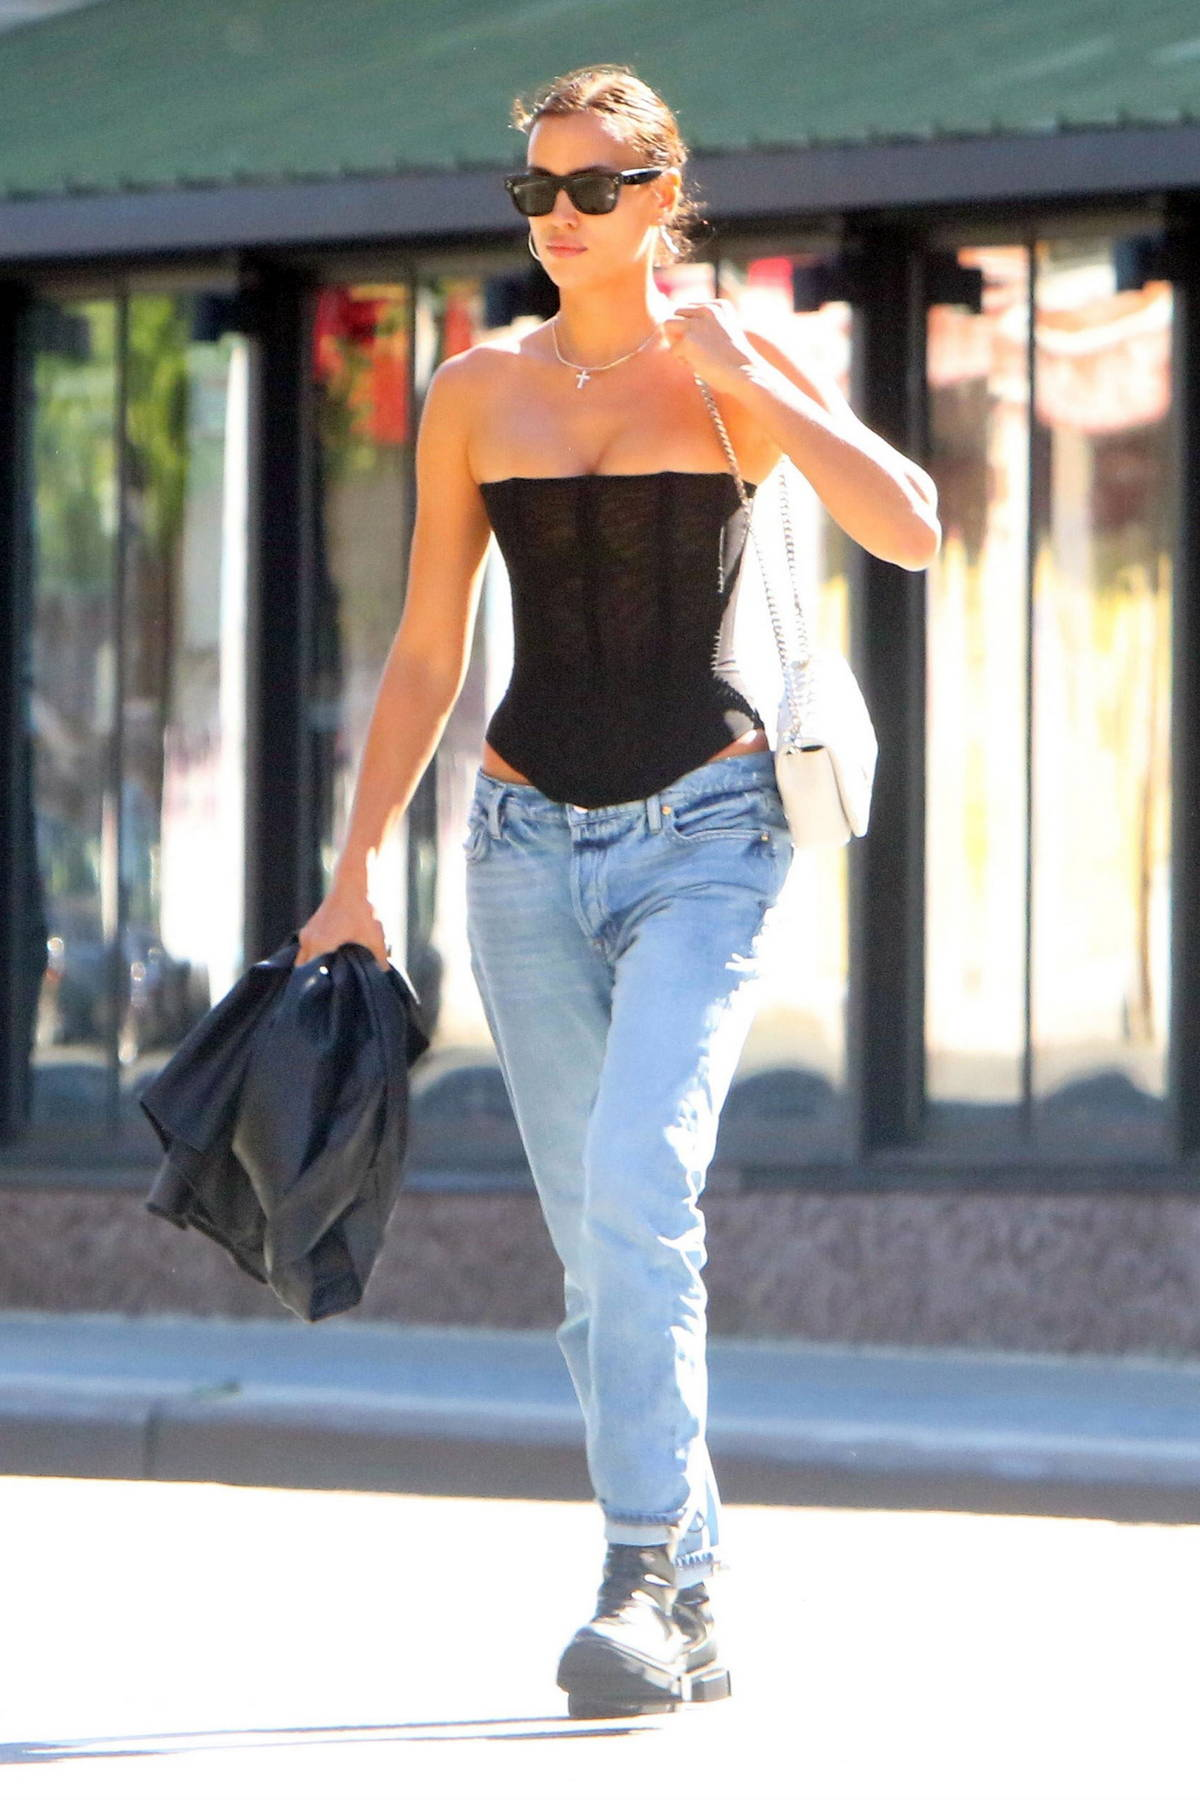 Irina Shayk steps out in a laced bodysuit paired with jeans and a leather jacket in New York City